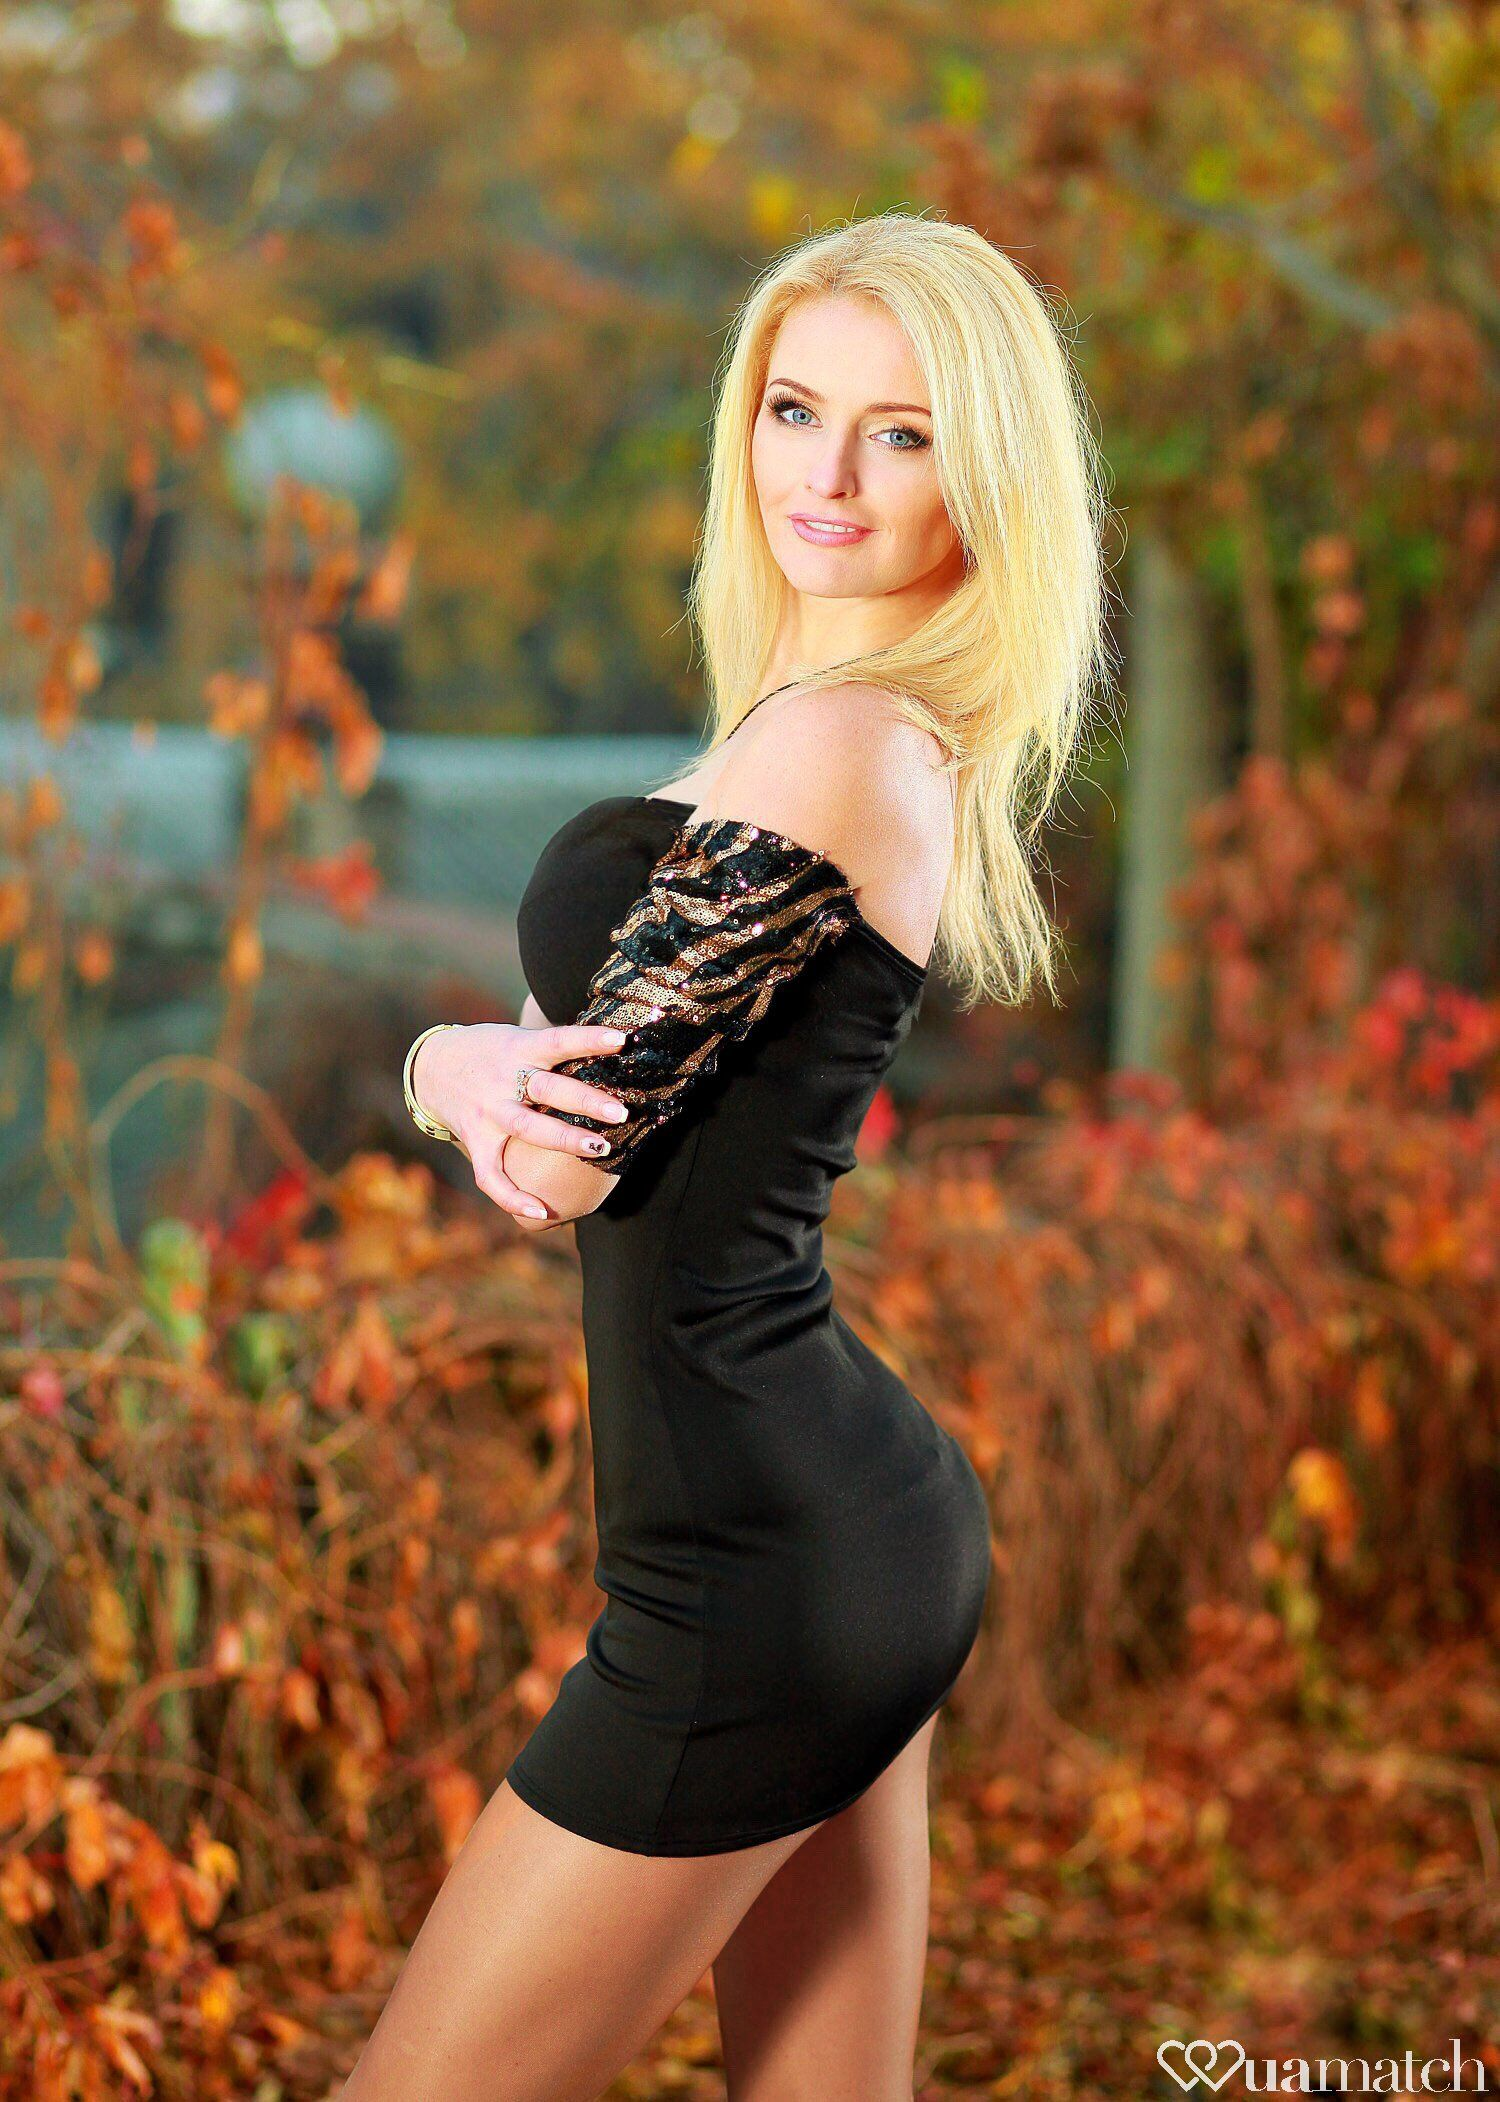 Free dating websites for single parents ukraine